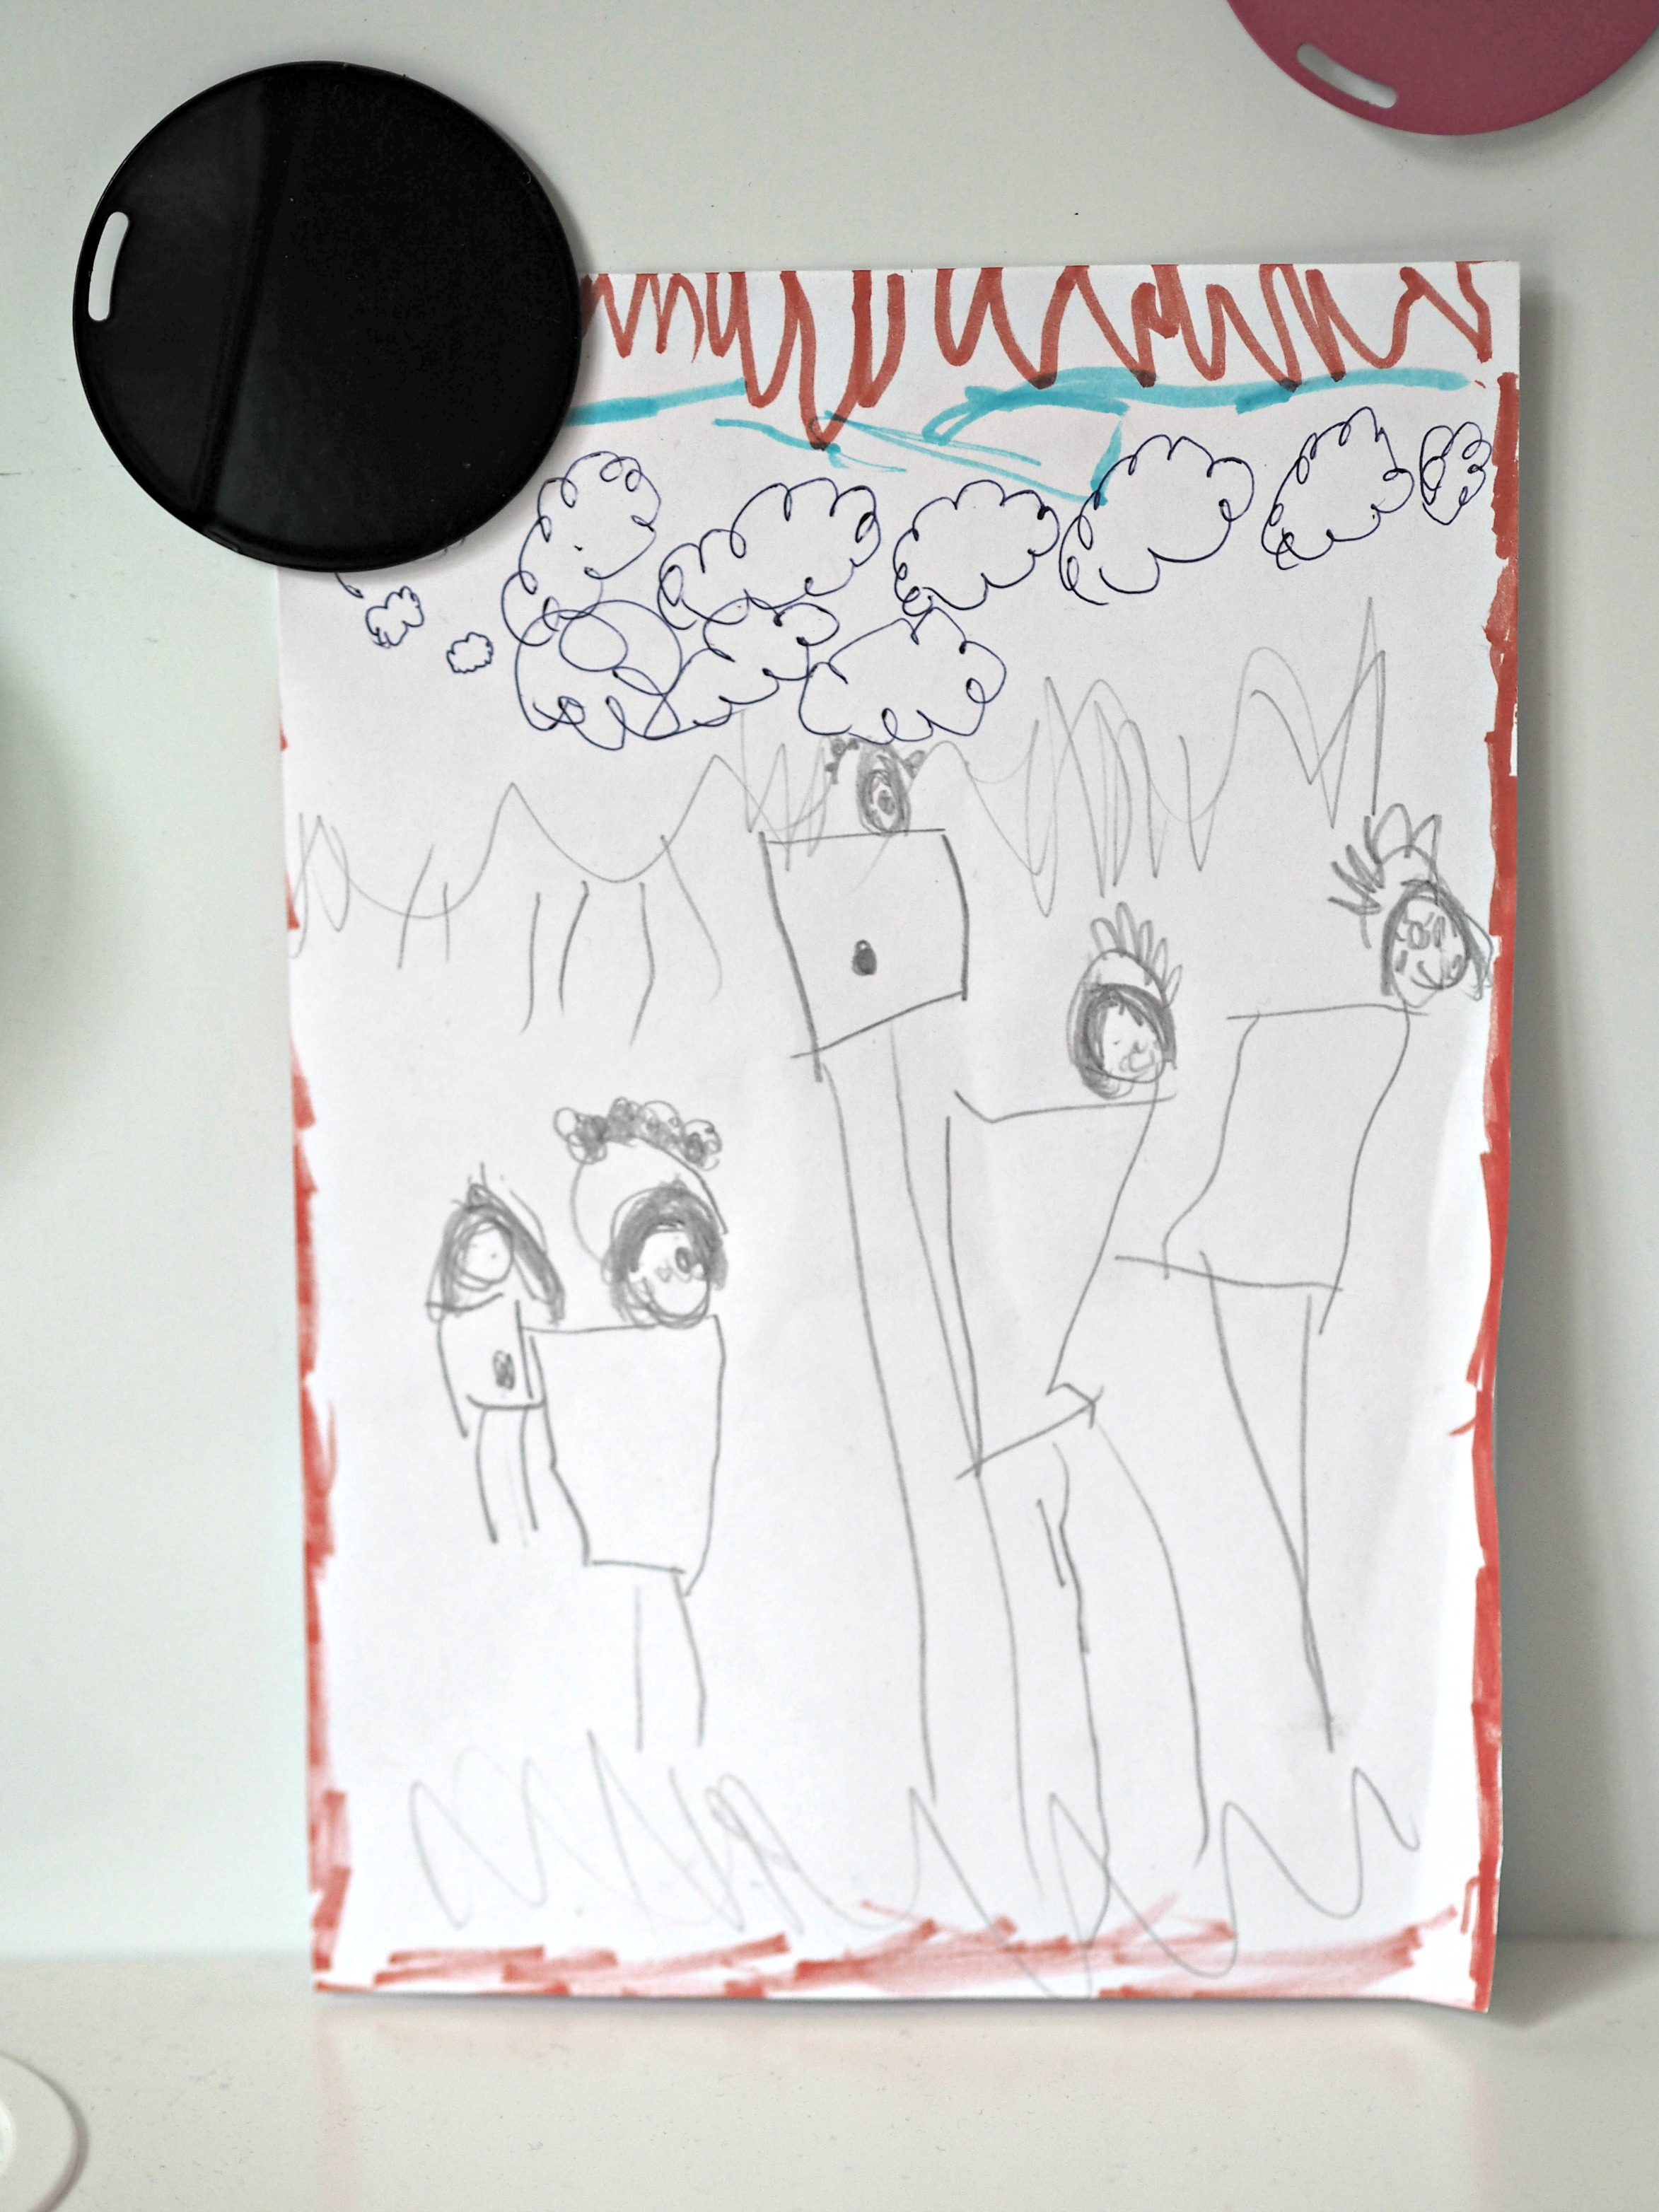 My Favourite Desk Item #MyDeskStory - Aria family drawing